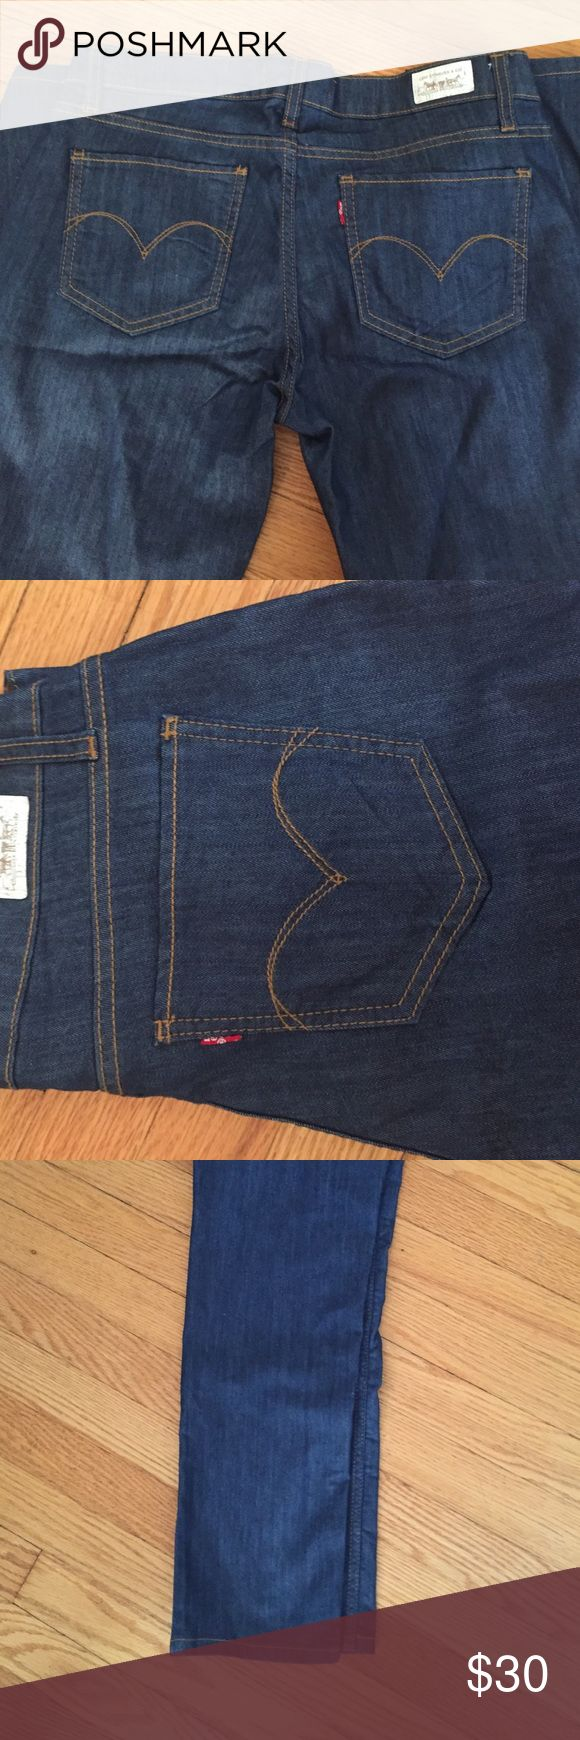 Levis Skinny Jeans NWOT. Dark wash. Never been worn! 524 style Levi's Jeans Skinny